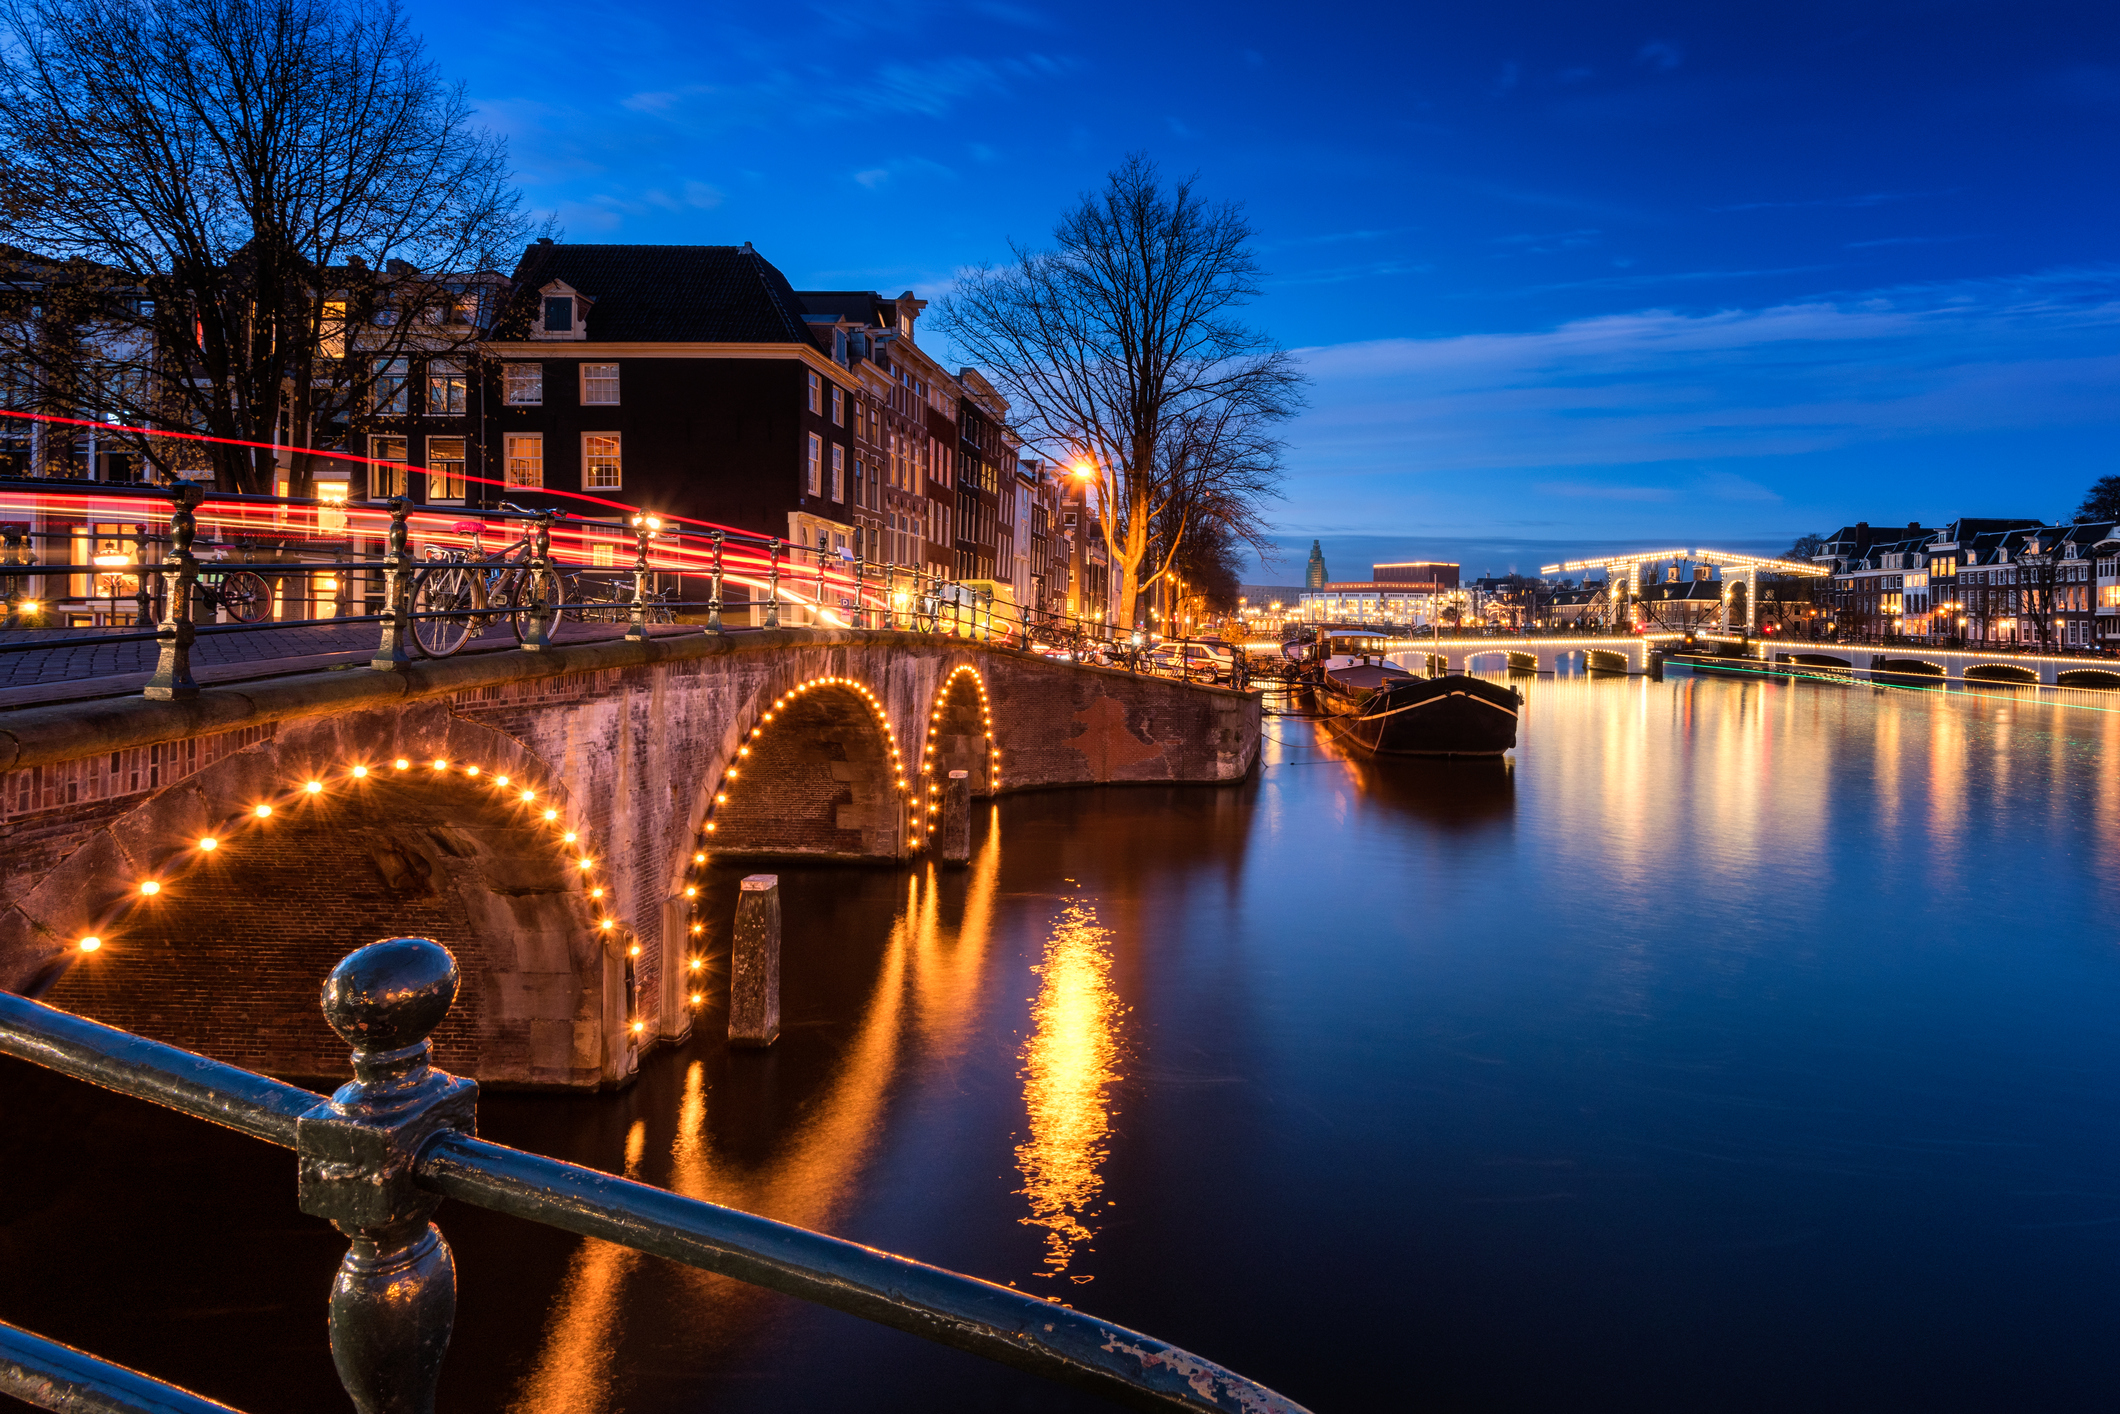 Amsterdam Canals and Bridges at Dusk